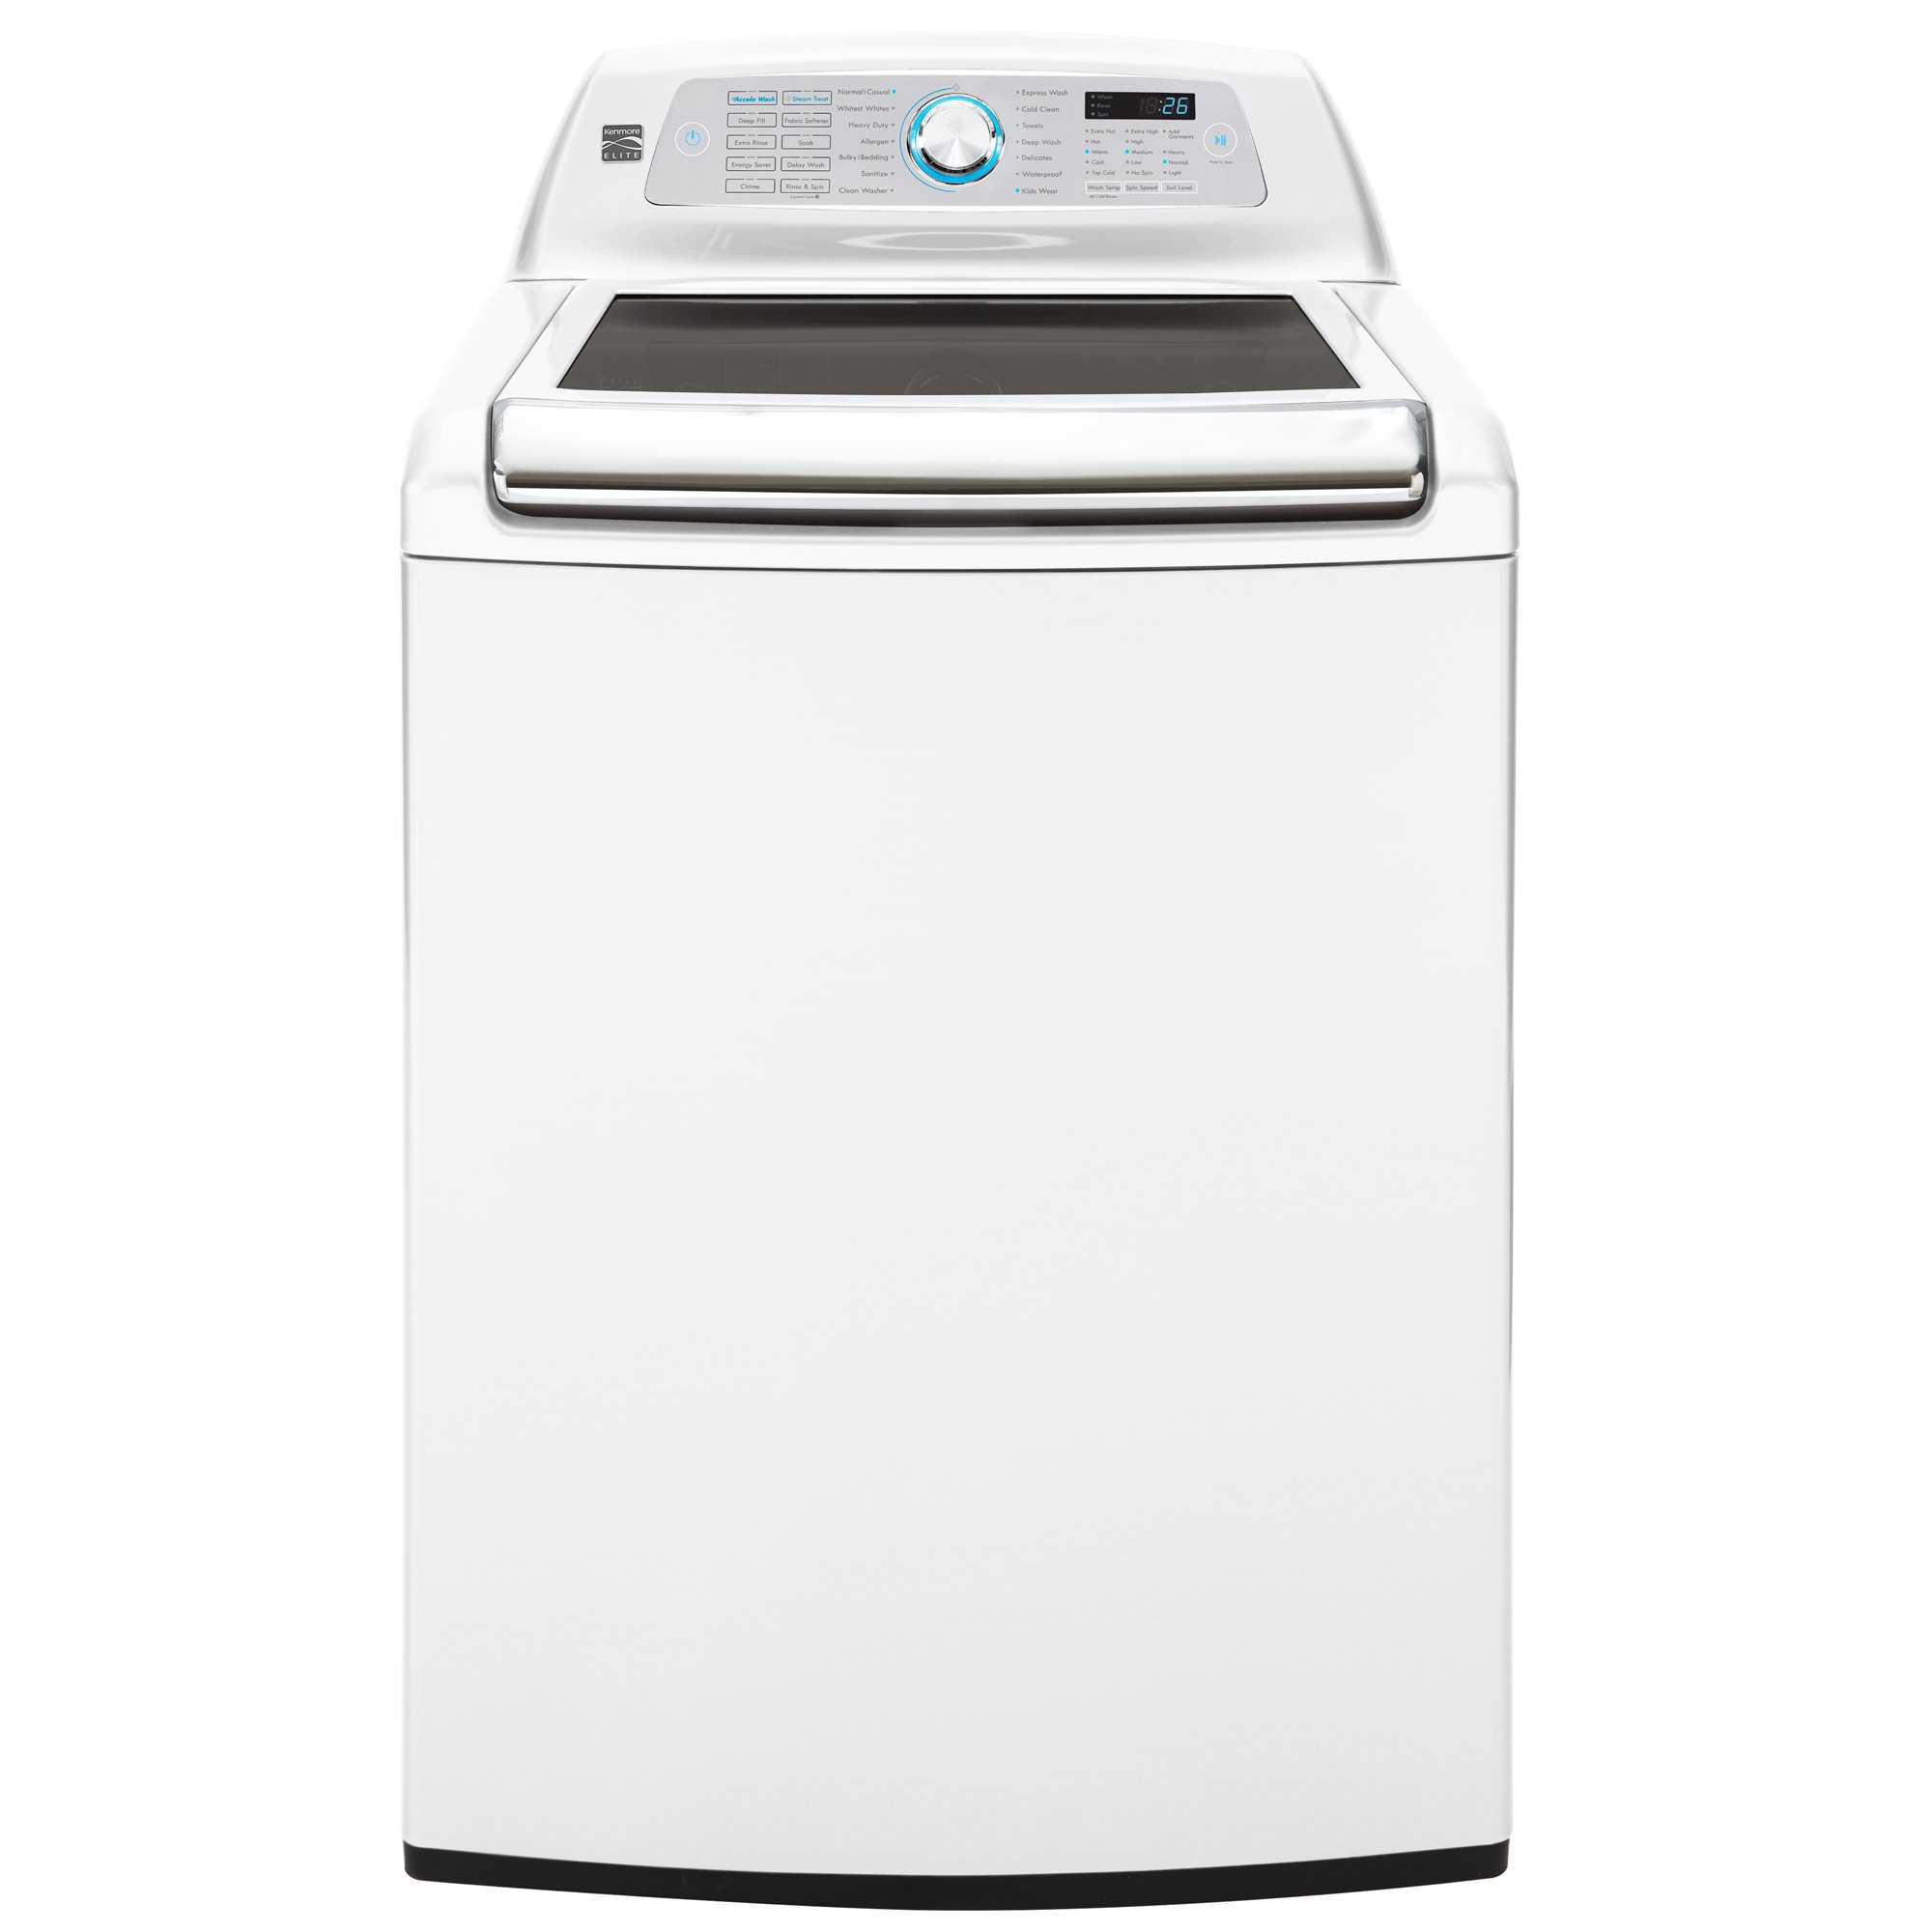 Kenmore Elite 31552 5.2 cu. ft. Top Load Washer in White, includes delivery and hookup (Available in select cities only)